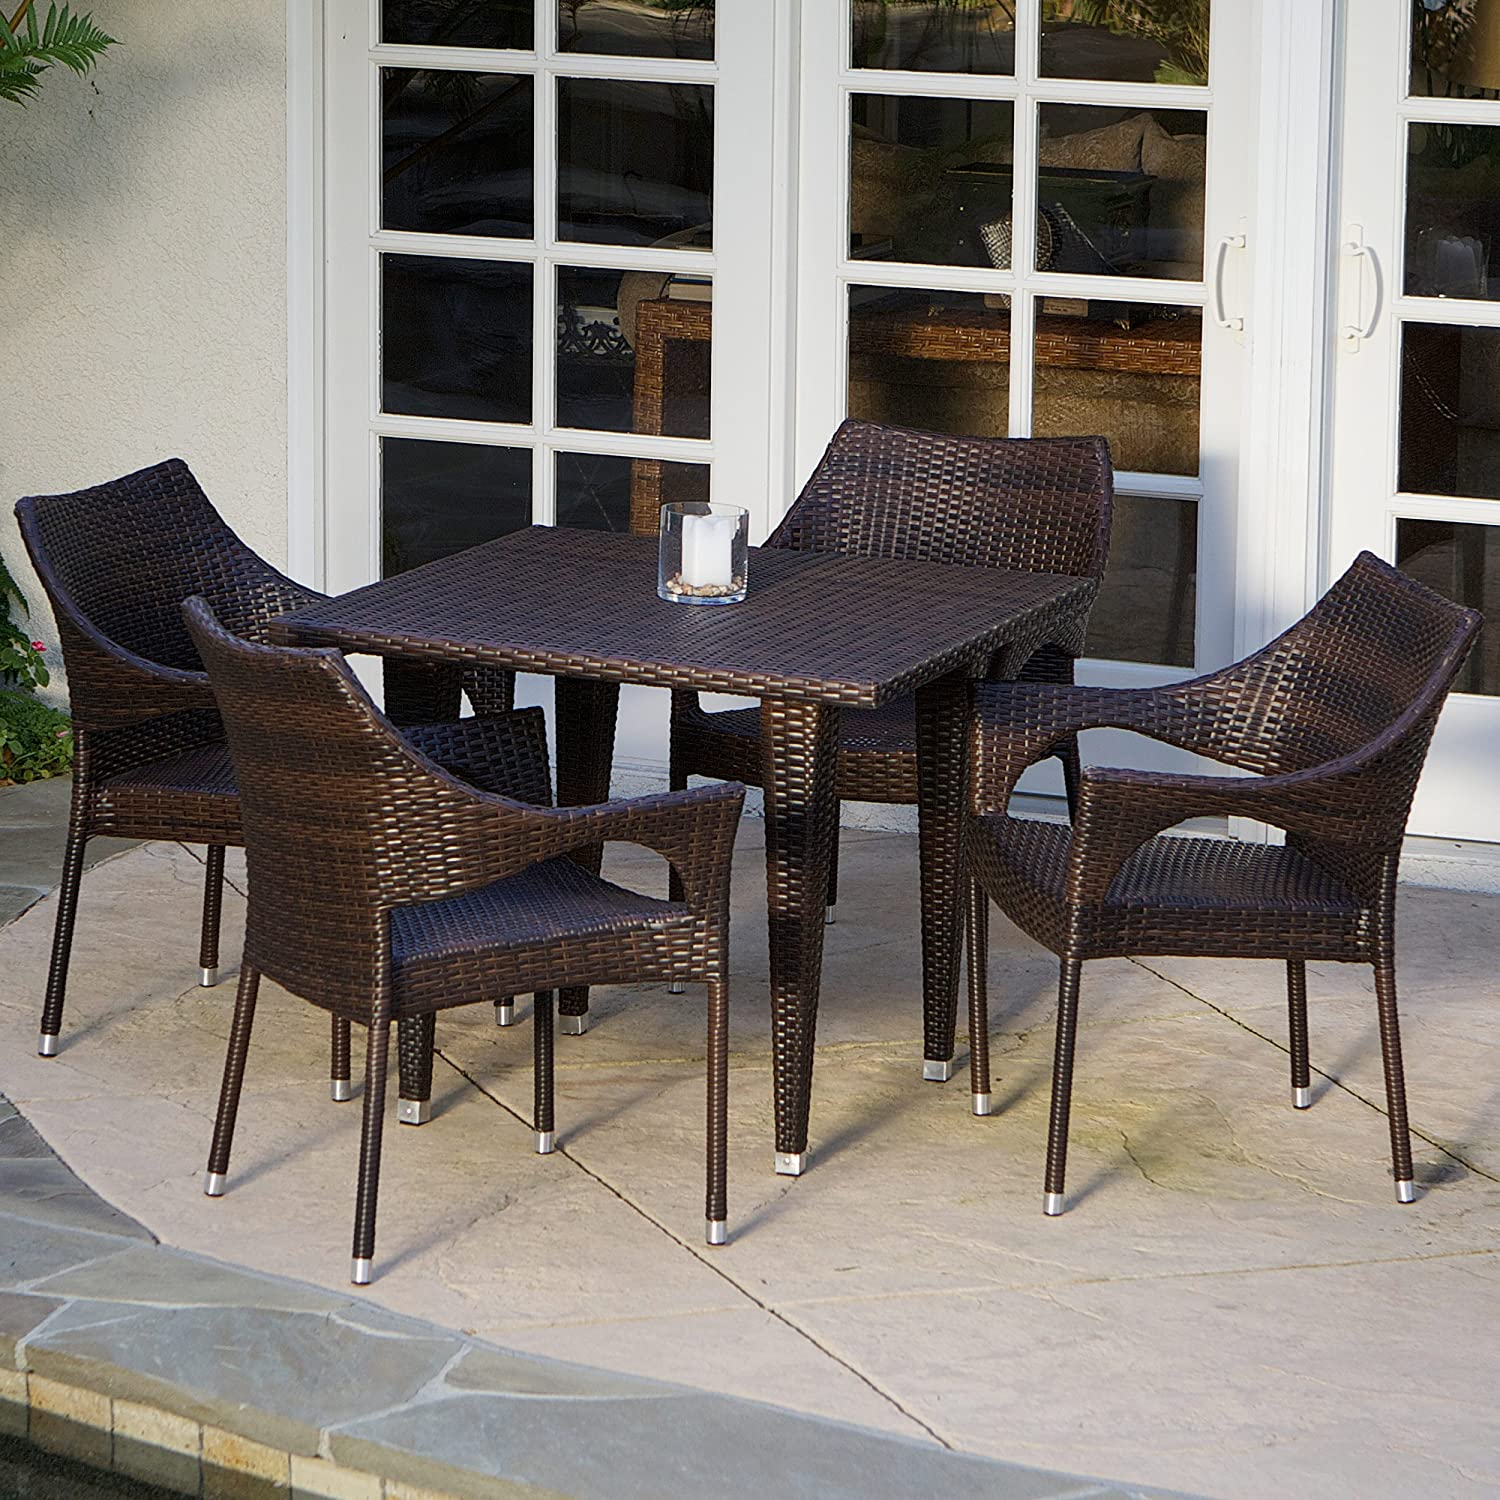 Del Mar 5 Piece Outdoor Wicker Dining Set with Stacking Chairs Perfect for Patio in Multibrown